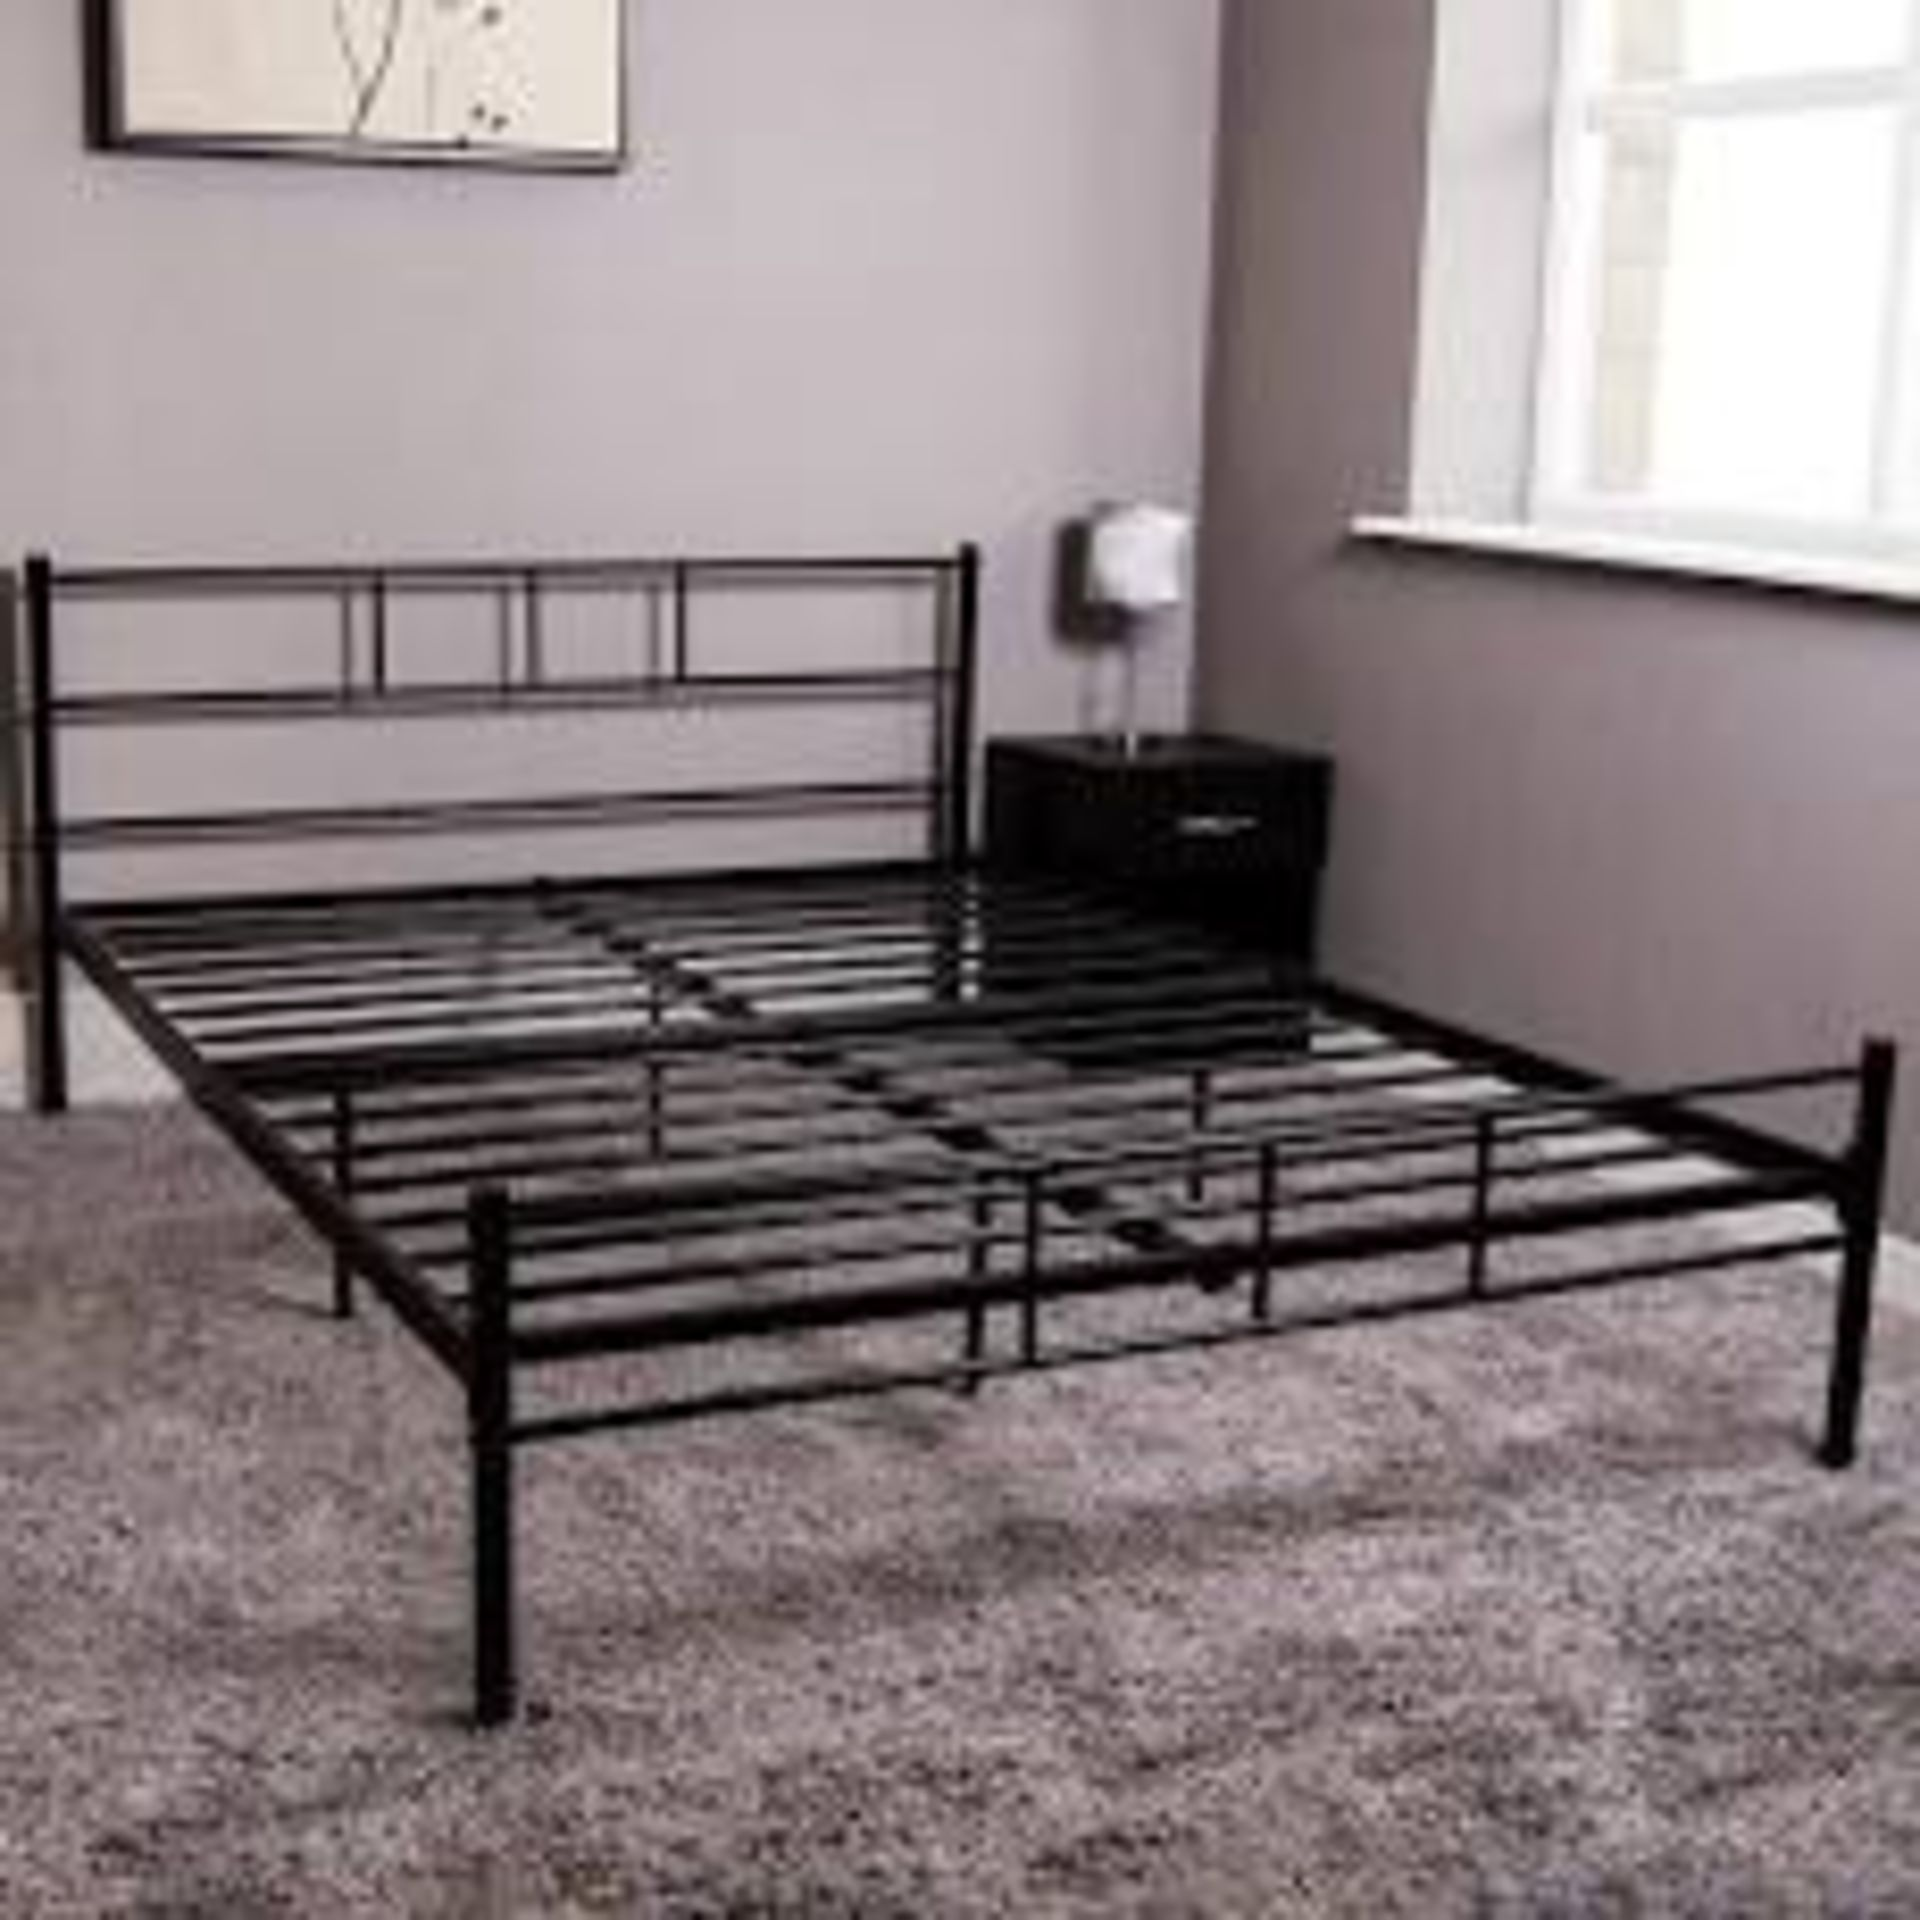 Lot 7 - Single Metal Bed In Black Powder Coating RRP £55 (18364) IMAGES ARE FOR ILLUSTRATION PURPOSES ONLY